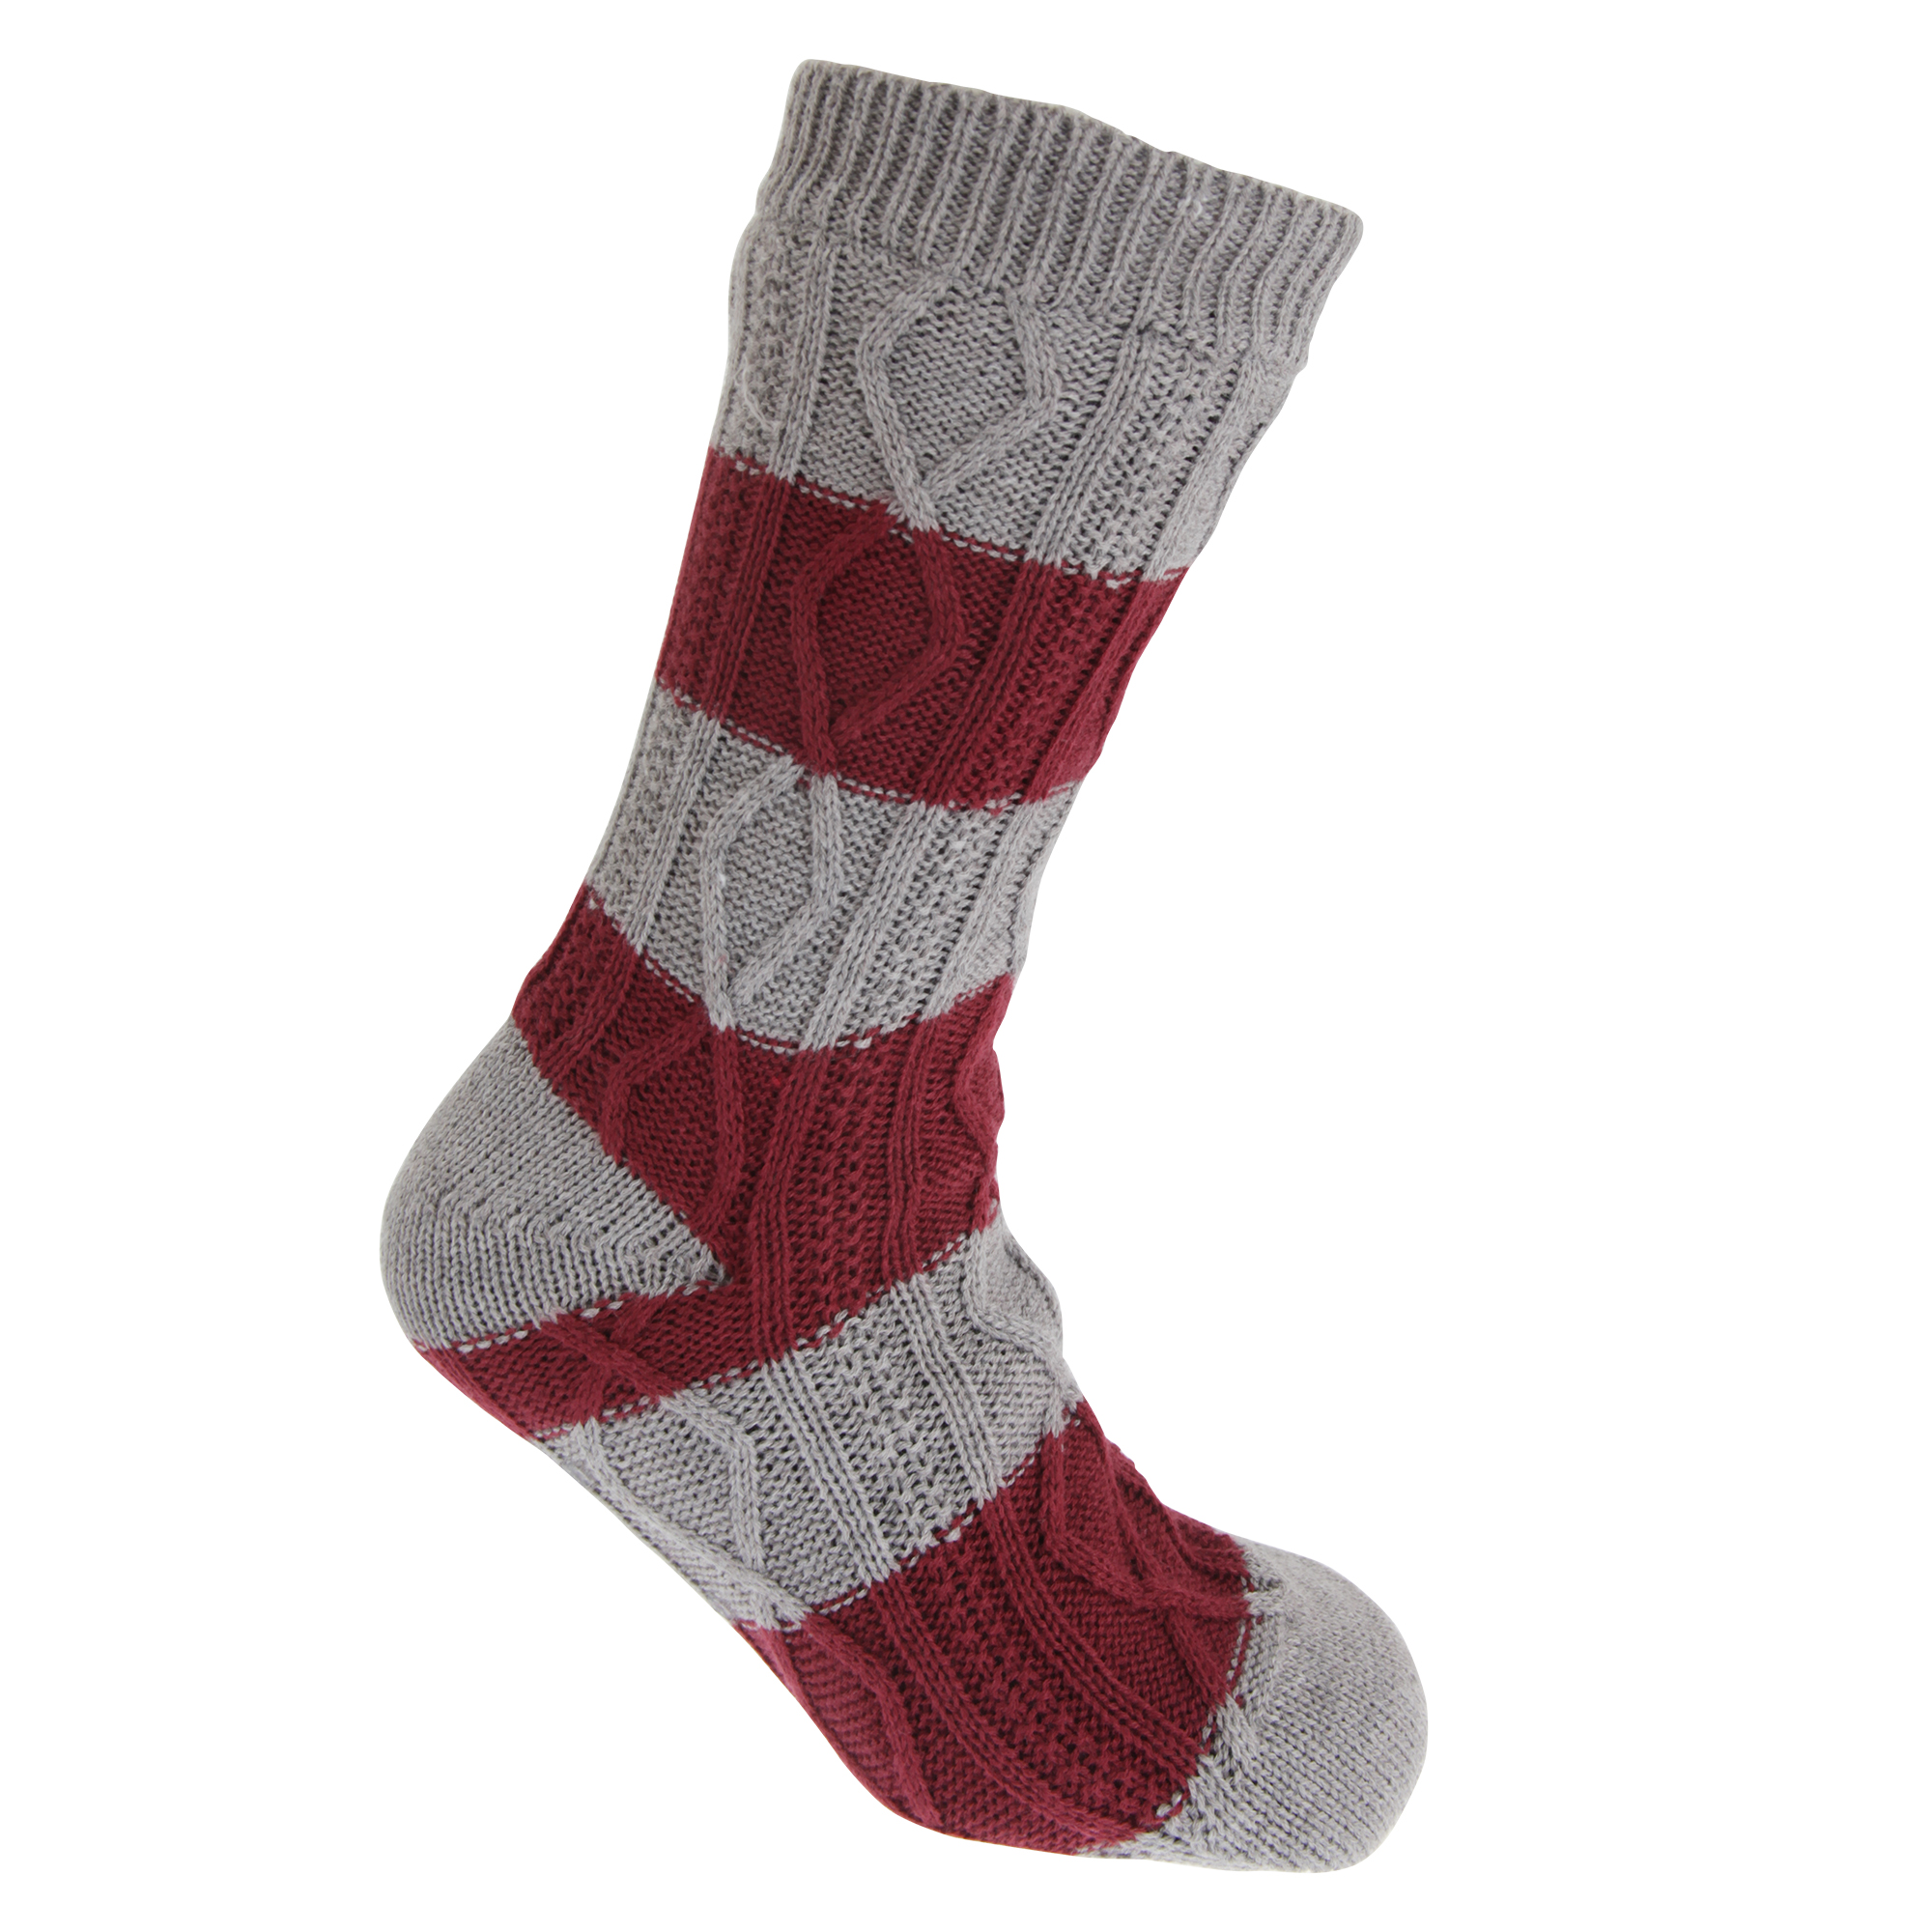 Tom Franks Mens Cable Knit Slipper Socks 1 Pair Mb526 Ebay